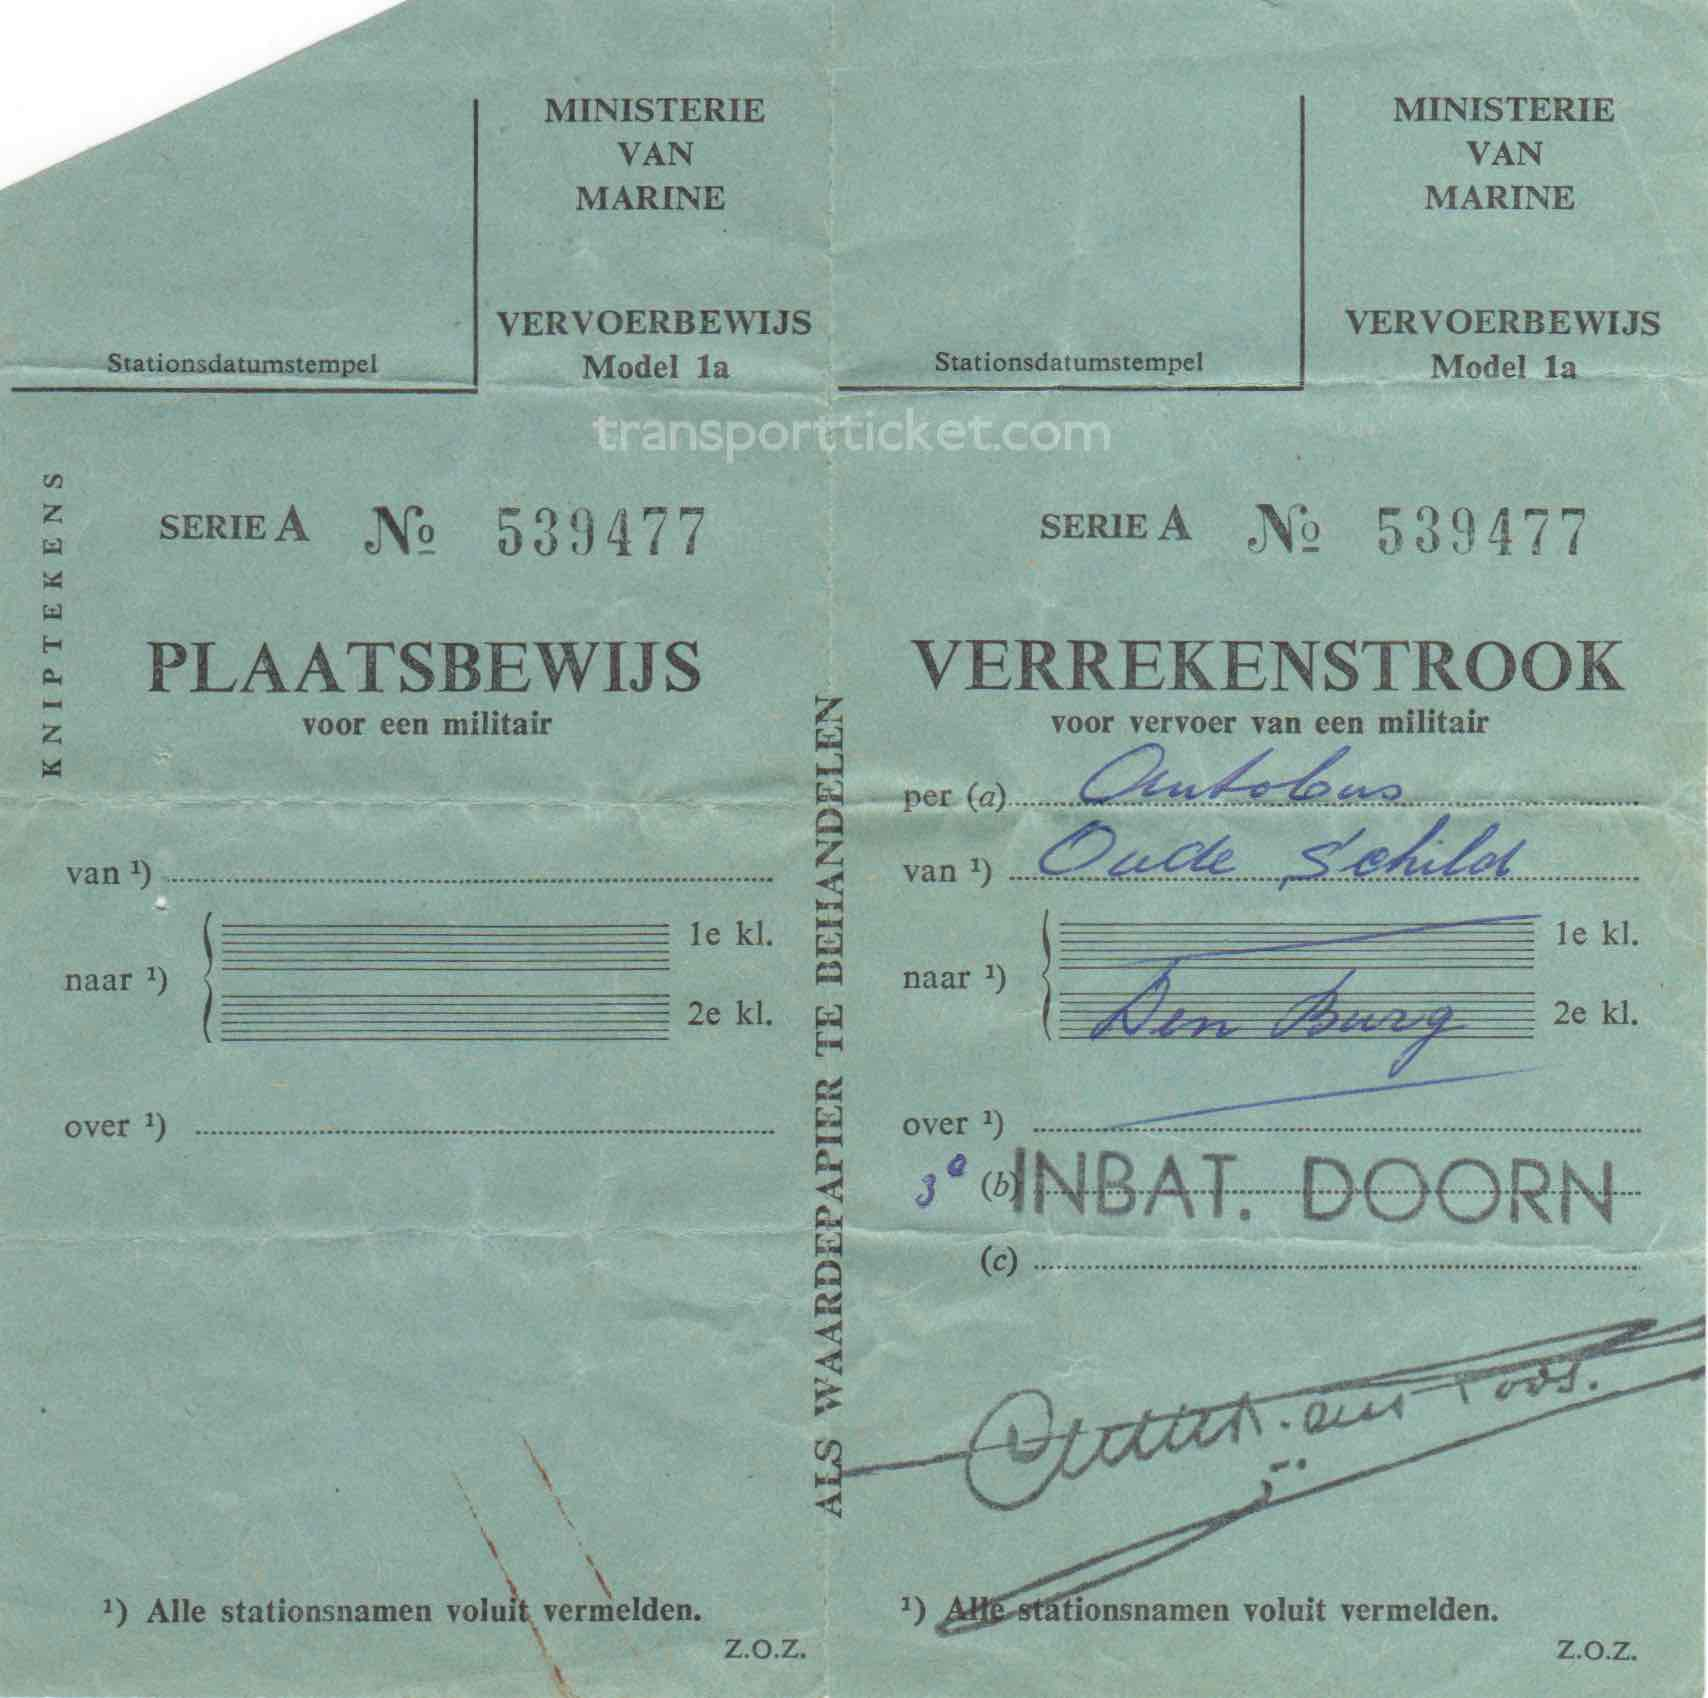 transport ticket issued by Dutch Ministry of Navy (1957)